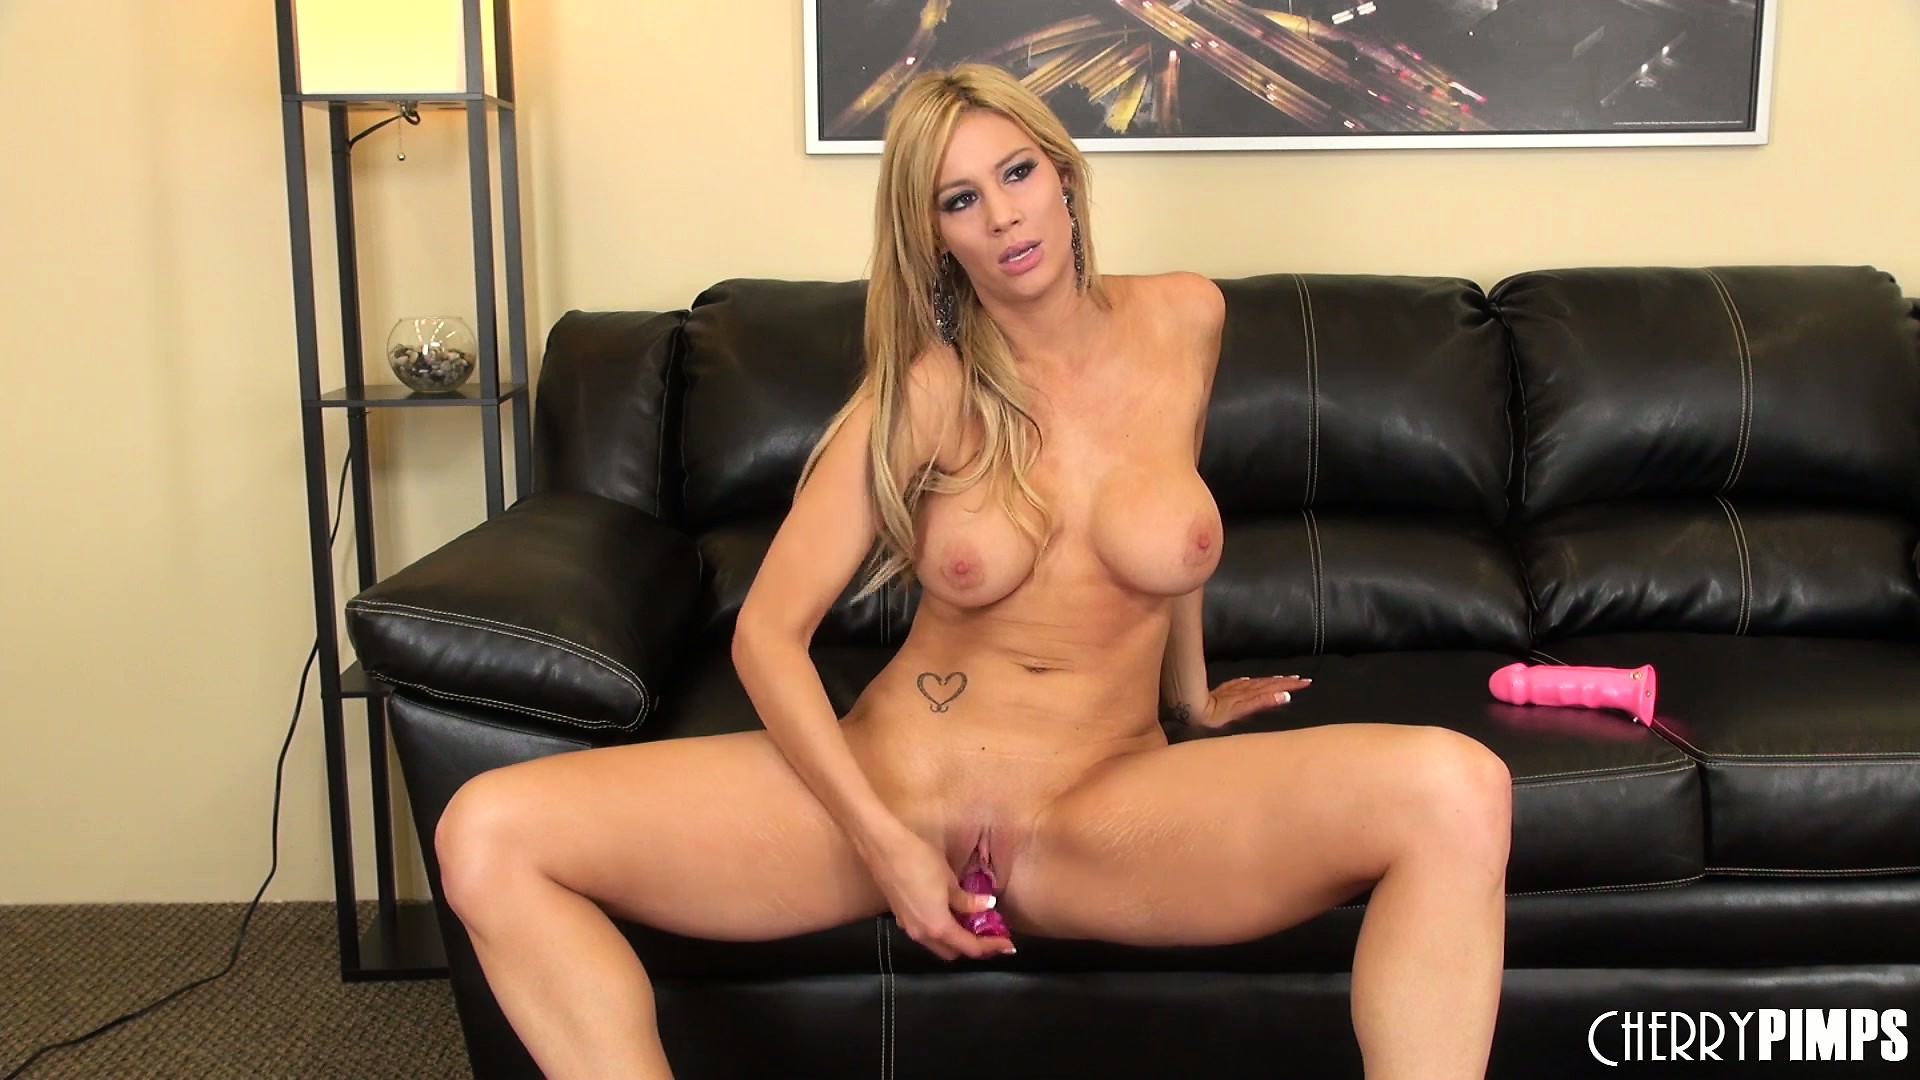 Porn Tube of She Sits On The Couch And Gets Her Toys Out To Go Solo On Her Cunt